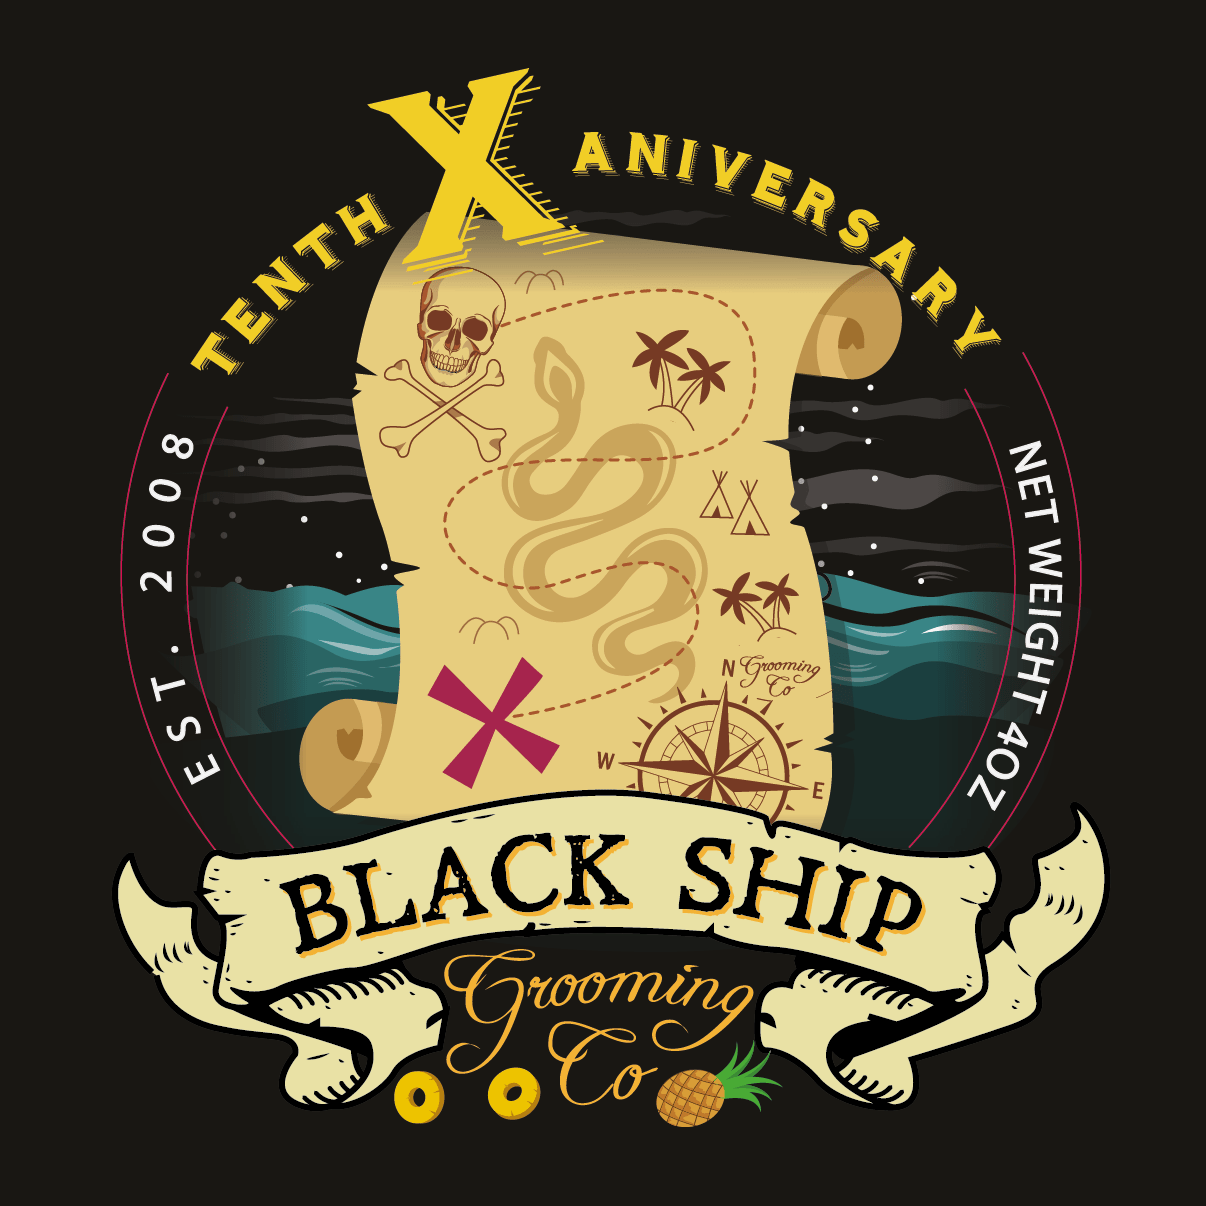 Black Ship Grooming - X - Aftershave image